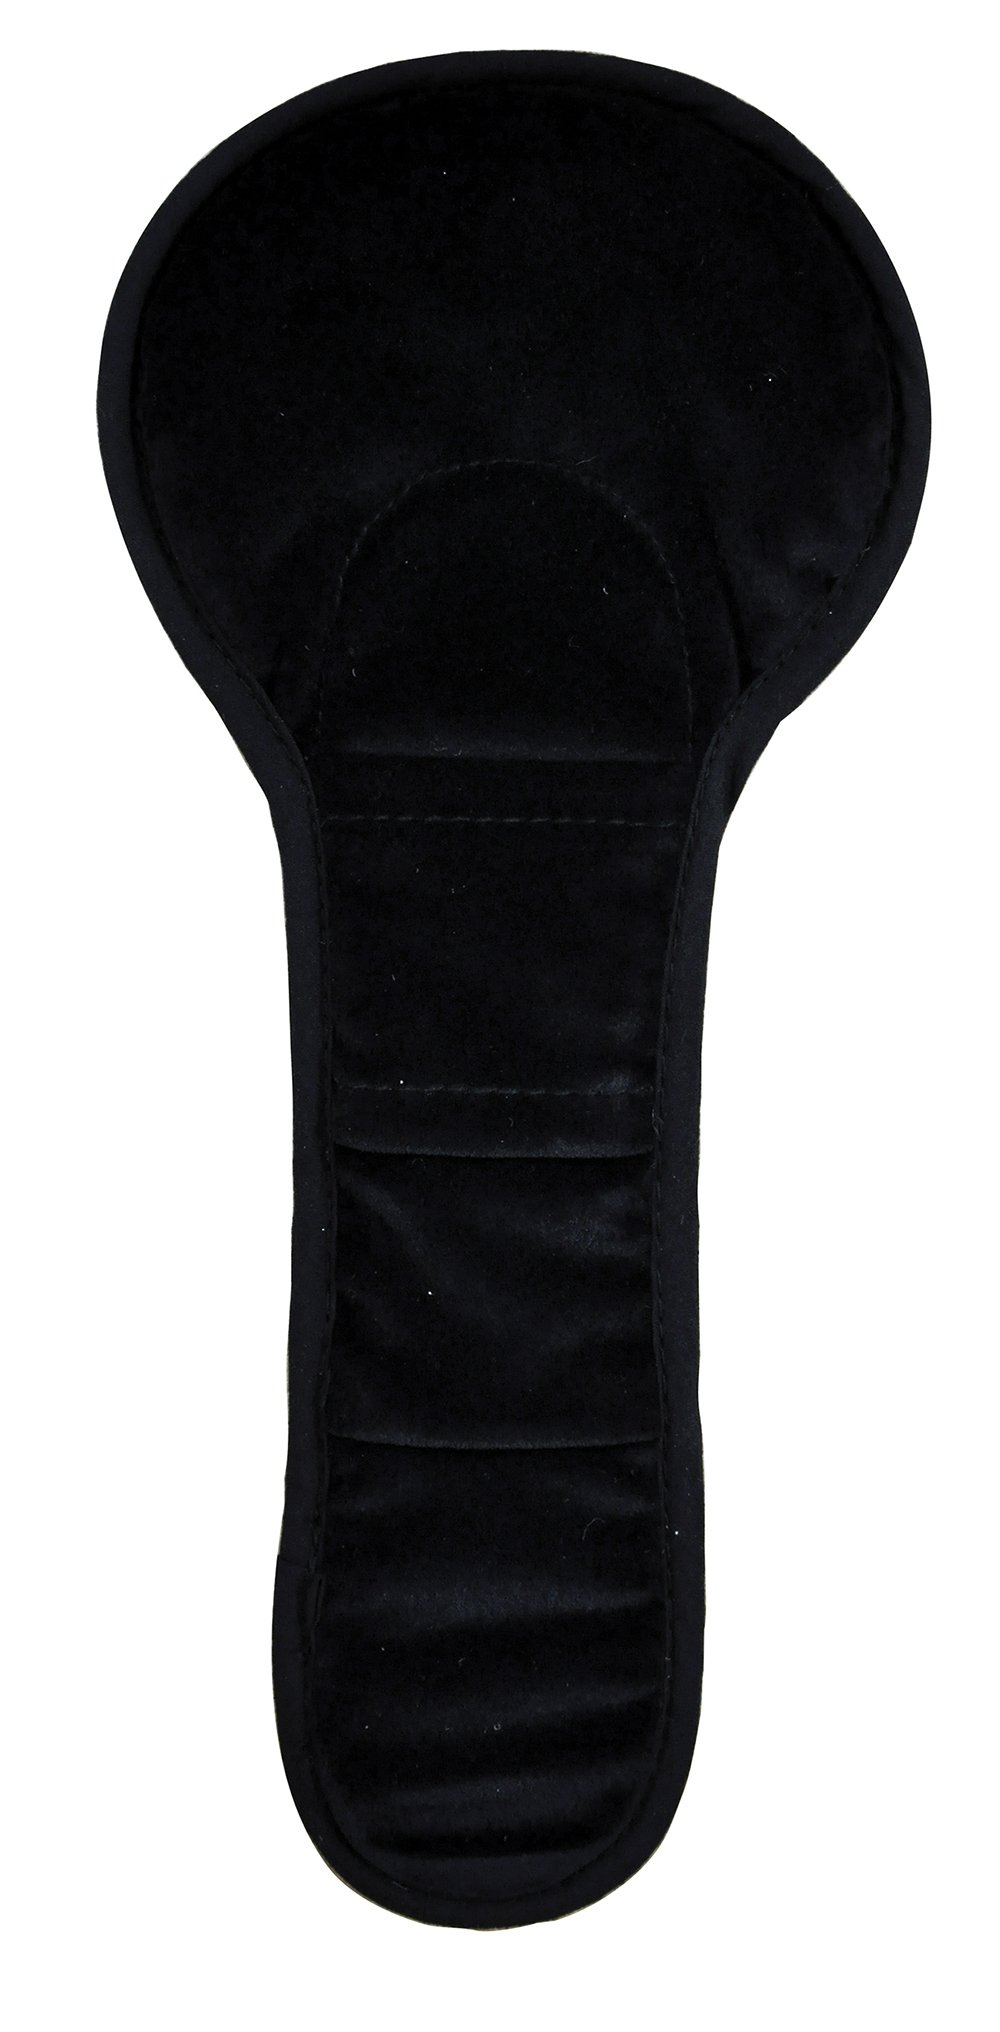 Britax EZ-Buckle Belly Pad for Harnessed Car Seats, Black